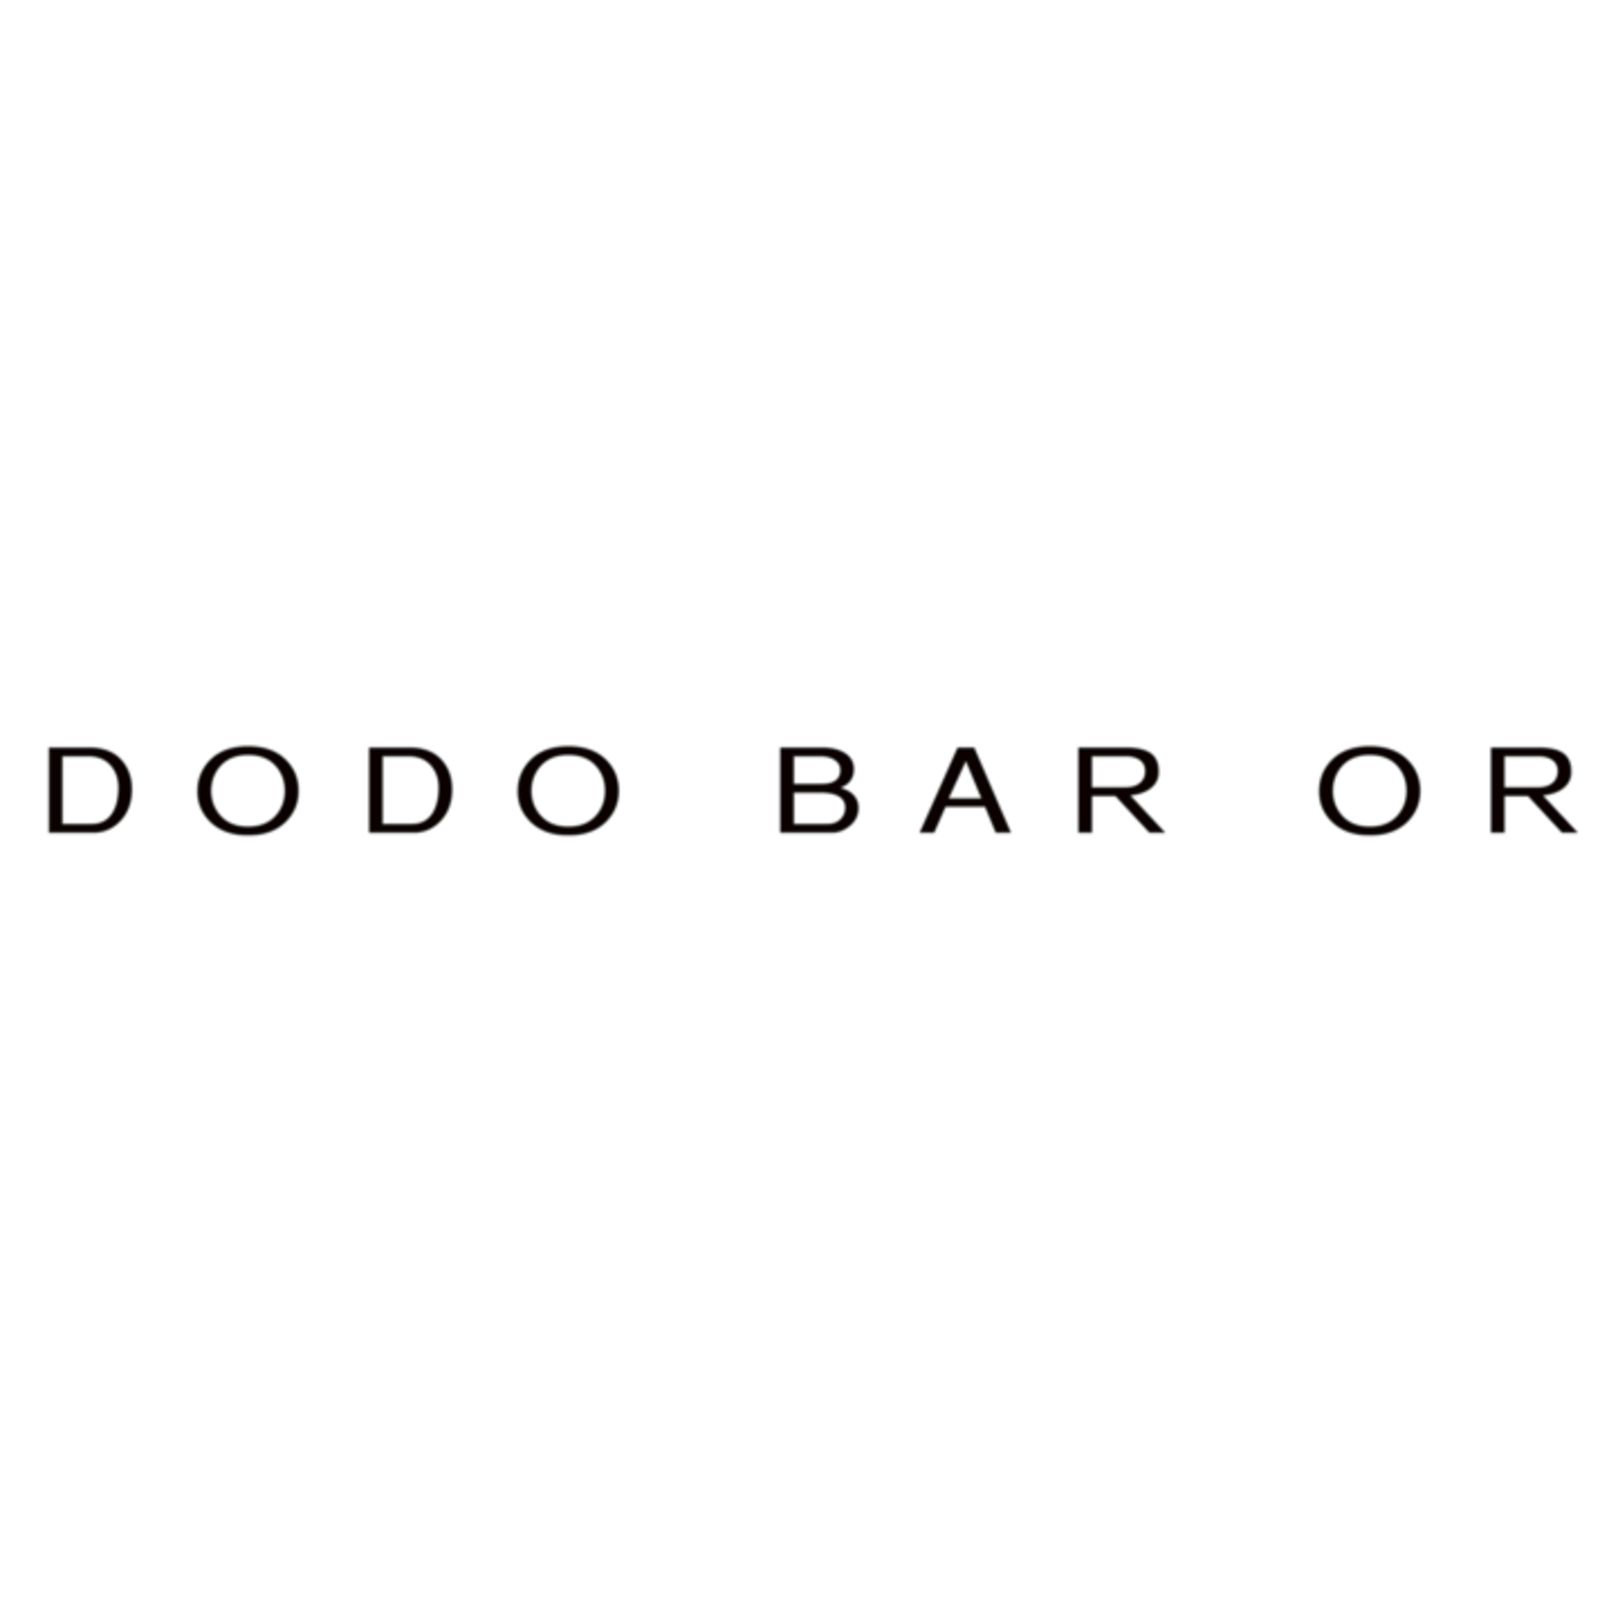 DODO BAR OR